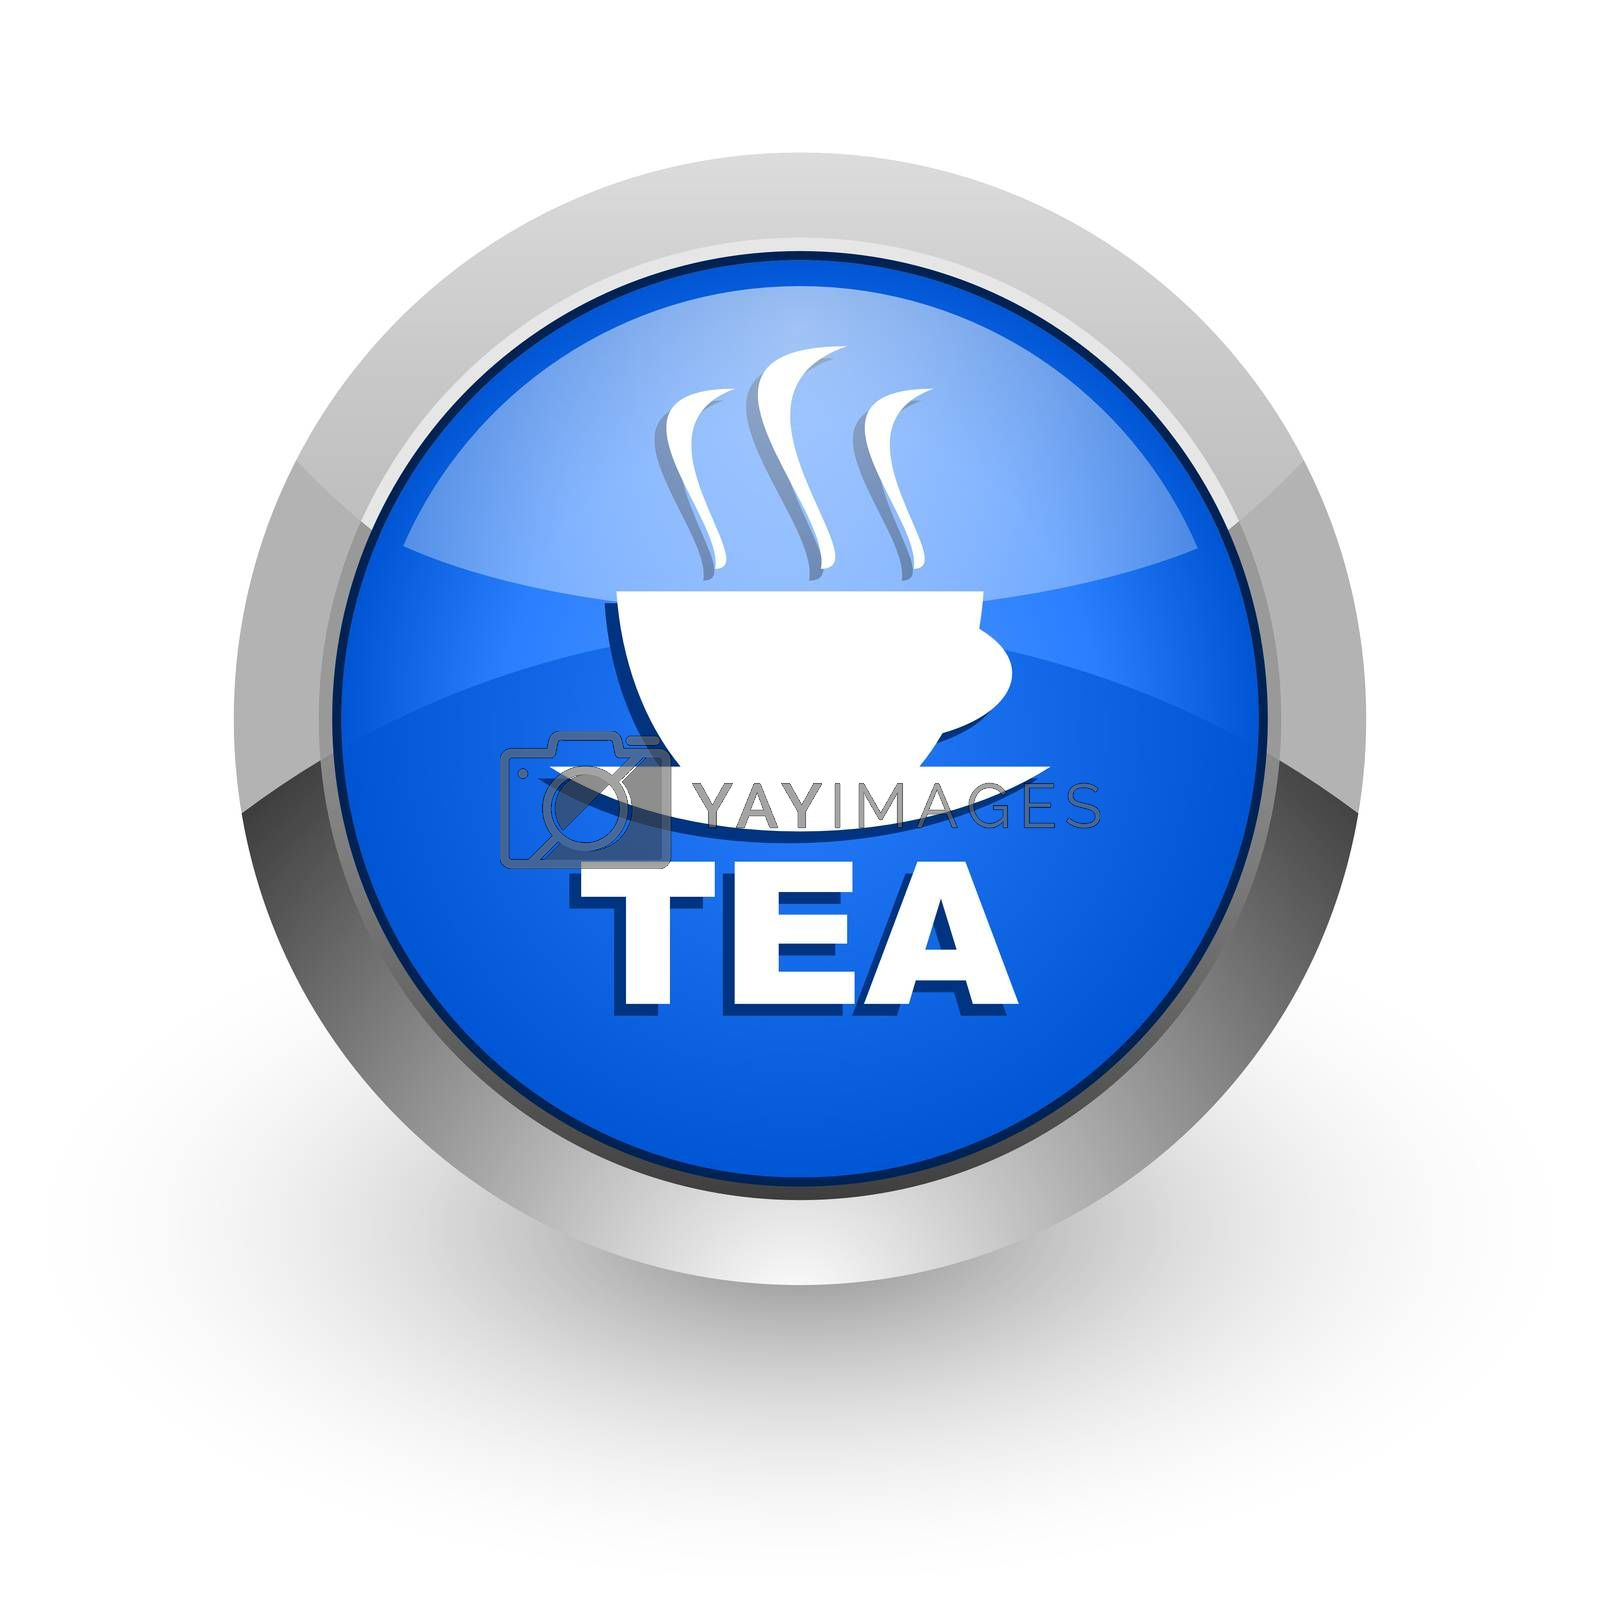 Royalty free image of tea blue glossy web icon by alexwhite